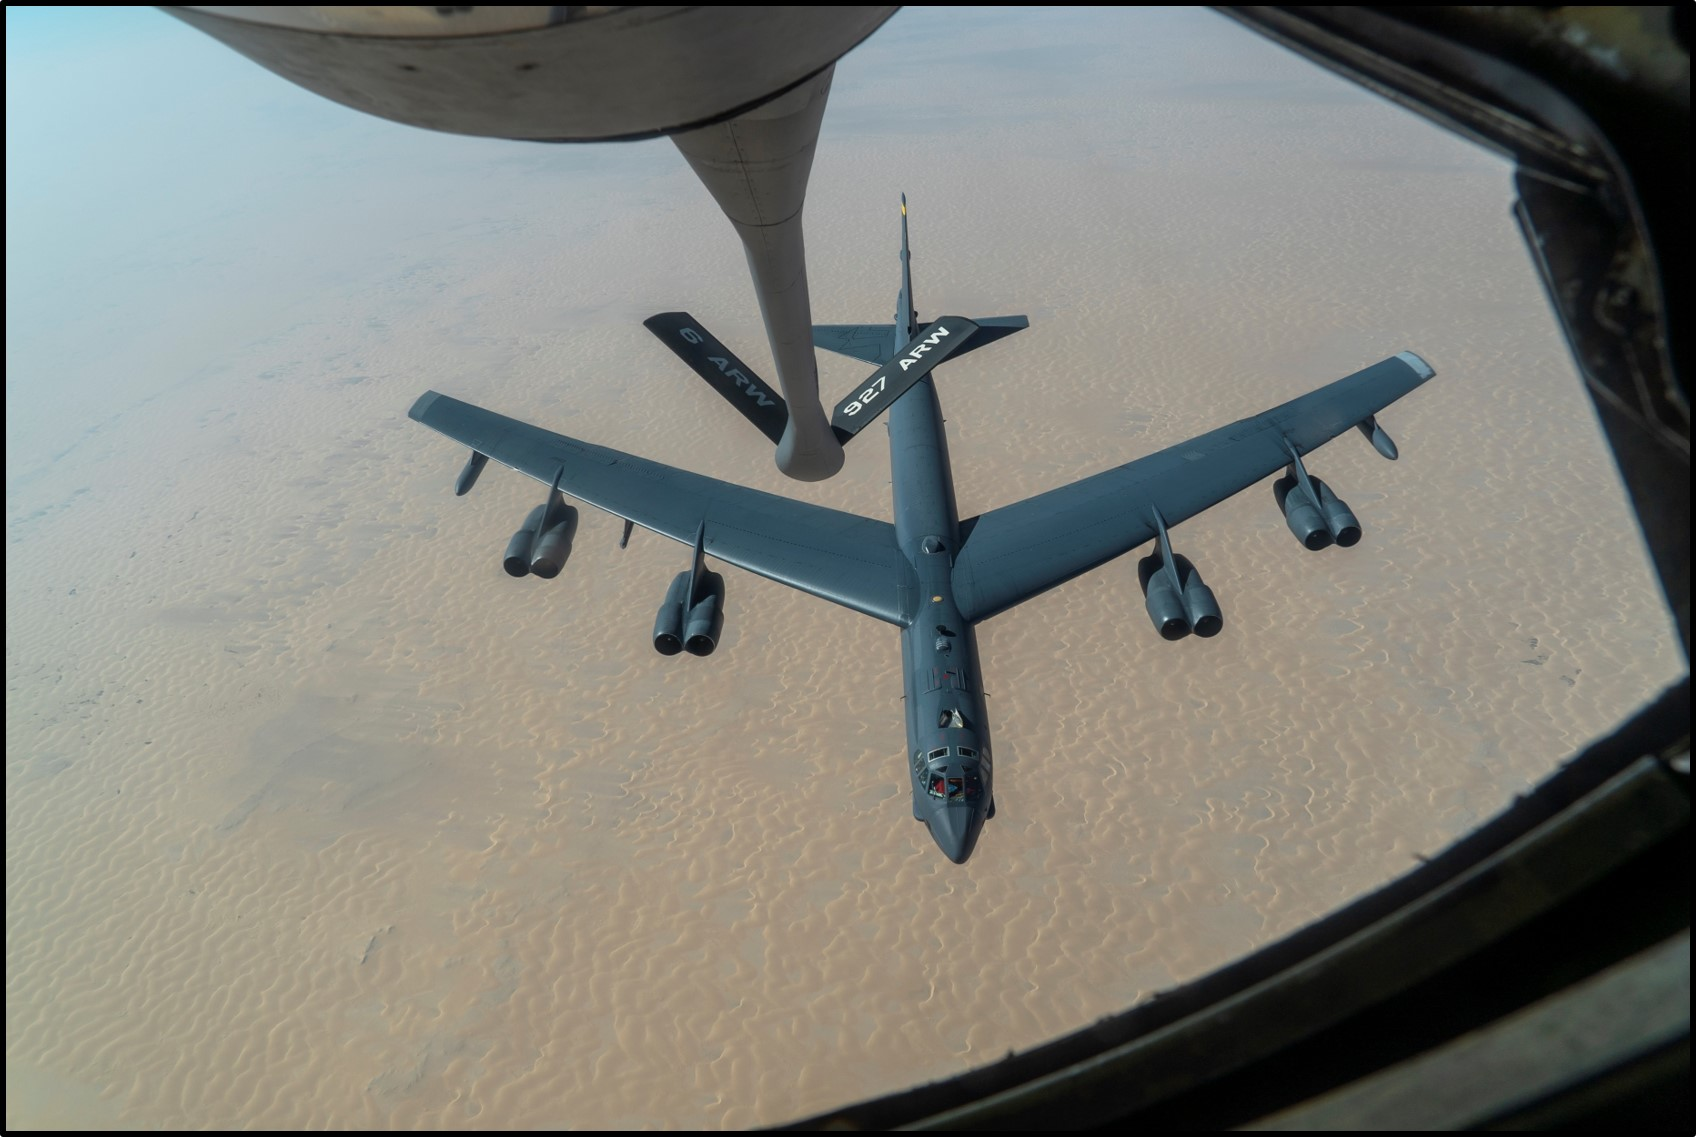 A B-52 bomber after aerial refueling